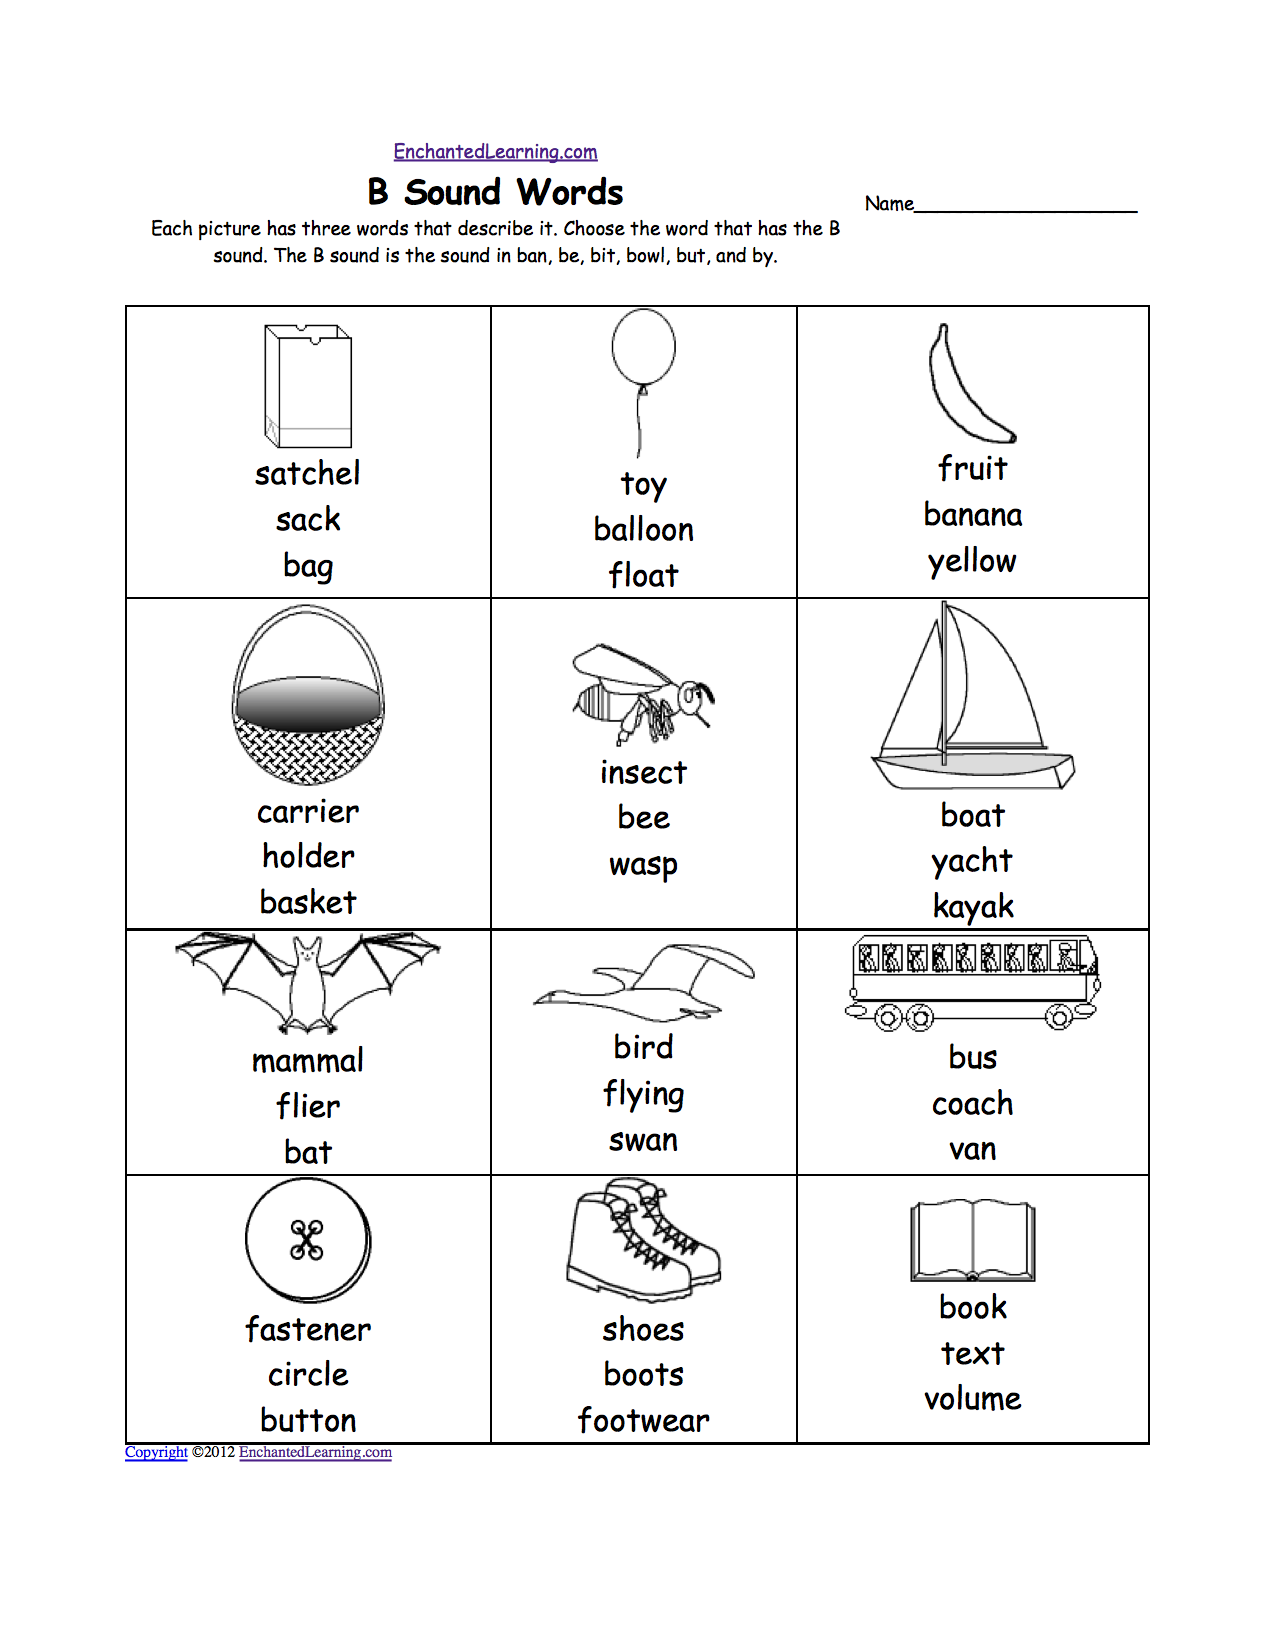 Aldiablosus  Wonderful Phonics Worksheets Multiple Choice Worksheets To Print  With Lovable Quotbquot Sound Phonics Worksheet Multiple Choice Each Picture Has Three Words That Describe It Choose The Word That Has A Quotbquot Sound The Quotbquot Sound Is The Sound  With Cool Grade  Verbs Worksheets Also Adding  Digit Numbers With Regrouping Worksheets In Addition Th Grade Equations Worksheets And Free Root Word Worksheets As Well As Free Time Activities Worksheet Additionally Comparing And Ordering Fractions Worksheets Th Grade From Enchantedlearningcom With Aldiablosus  Lovable Phonics Worksheets Multiple Choice Worksheets To Print  With Cool Quotbquot Sound Phonics Worksheet Multiple Choice Each Picture Has Three Words That Describe It Choose The Word That Has A Quotbquot Sound The Quotbquot Sound Is The Sound  And Wonderful Grade  Verbs Worksheets Also Adding  Digit Numbers With Regrouping Worksheets In Addition Th Grade Equations Worksheets From Enchantedlearningcom